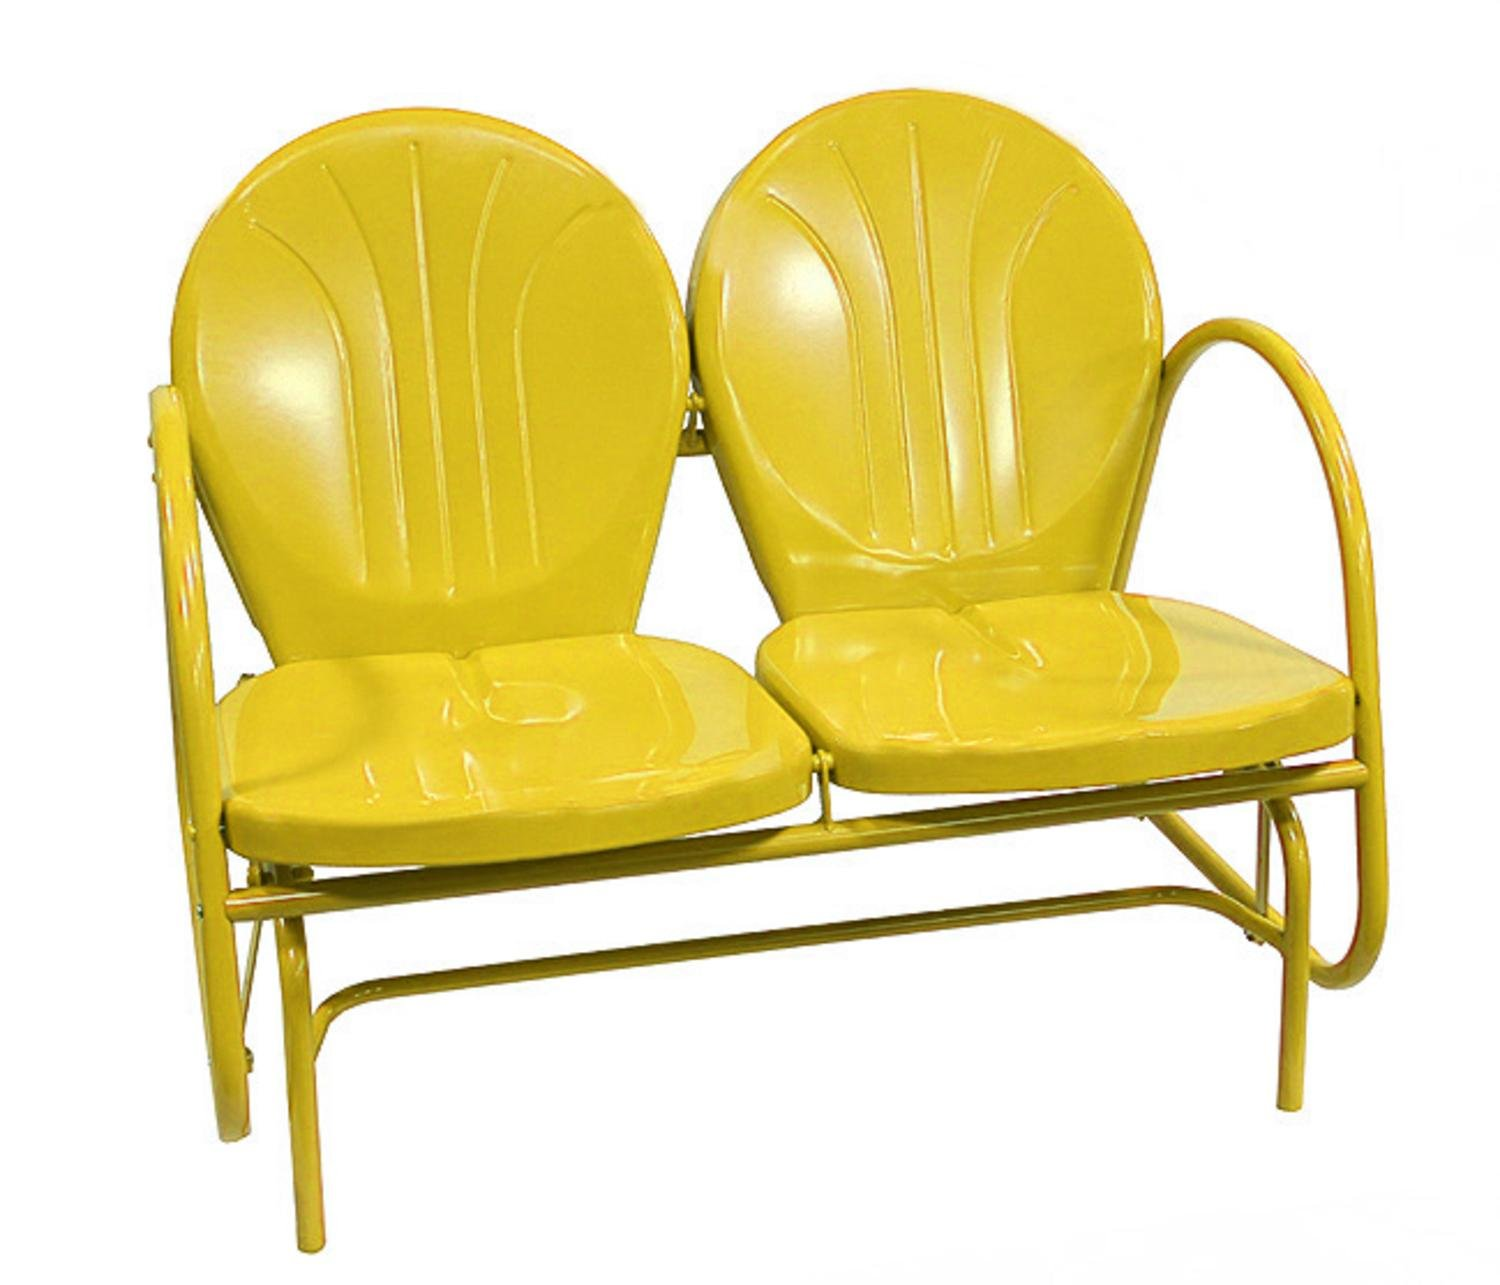 Sunshine Yellow Retro Metal Tulip Double Glider